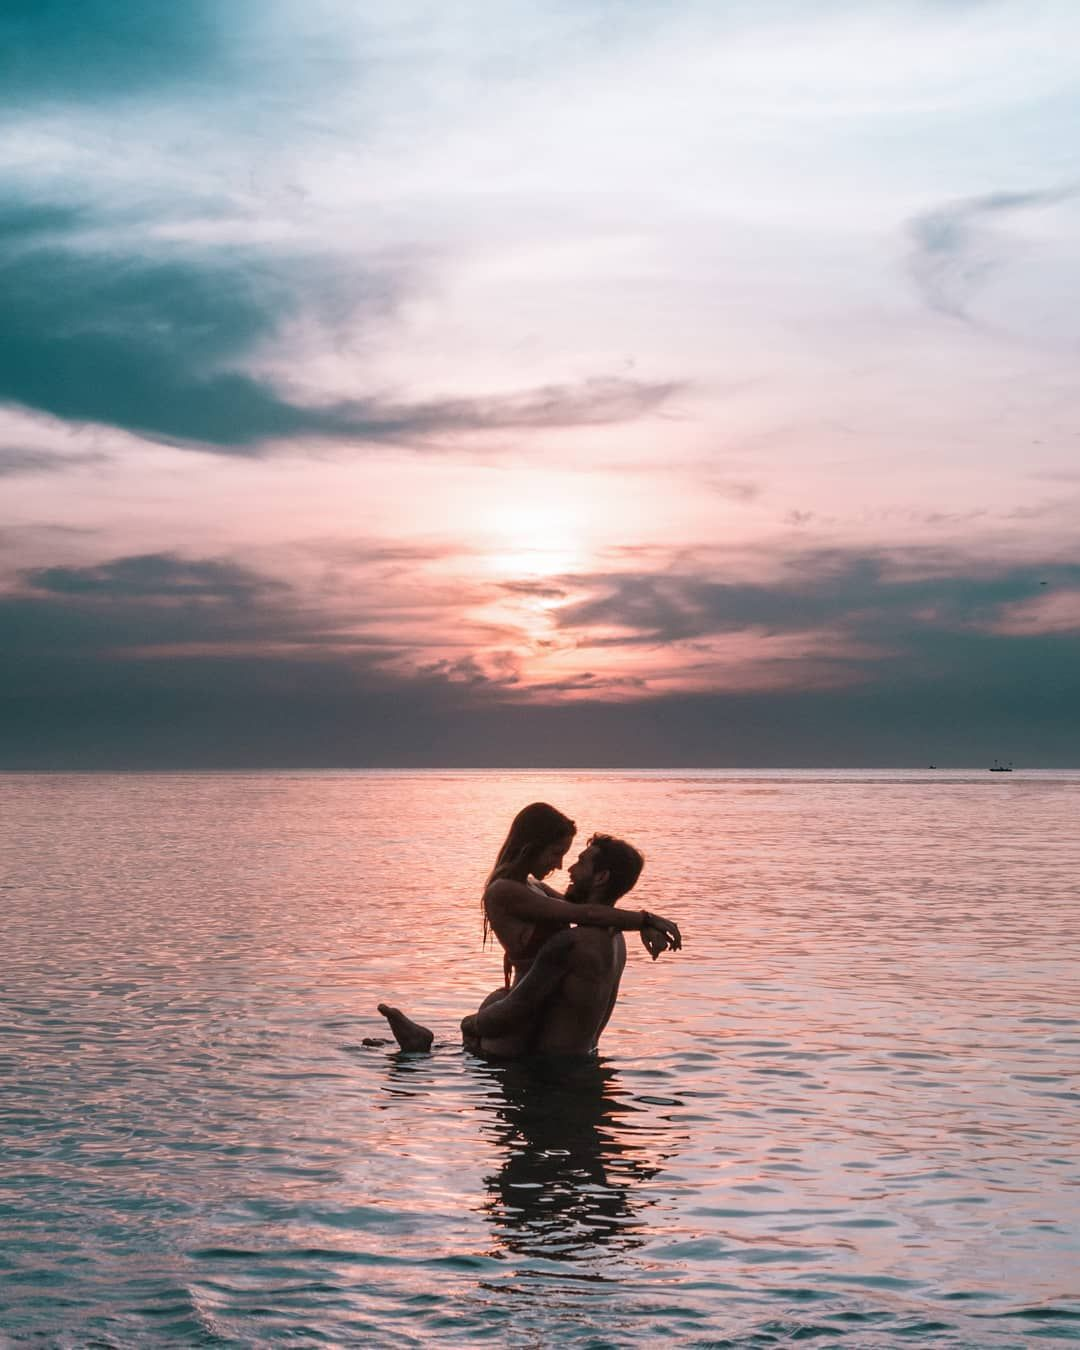 freeoversea sunset travelcouple instagram beautiful photogtaphy